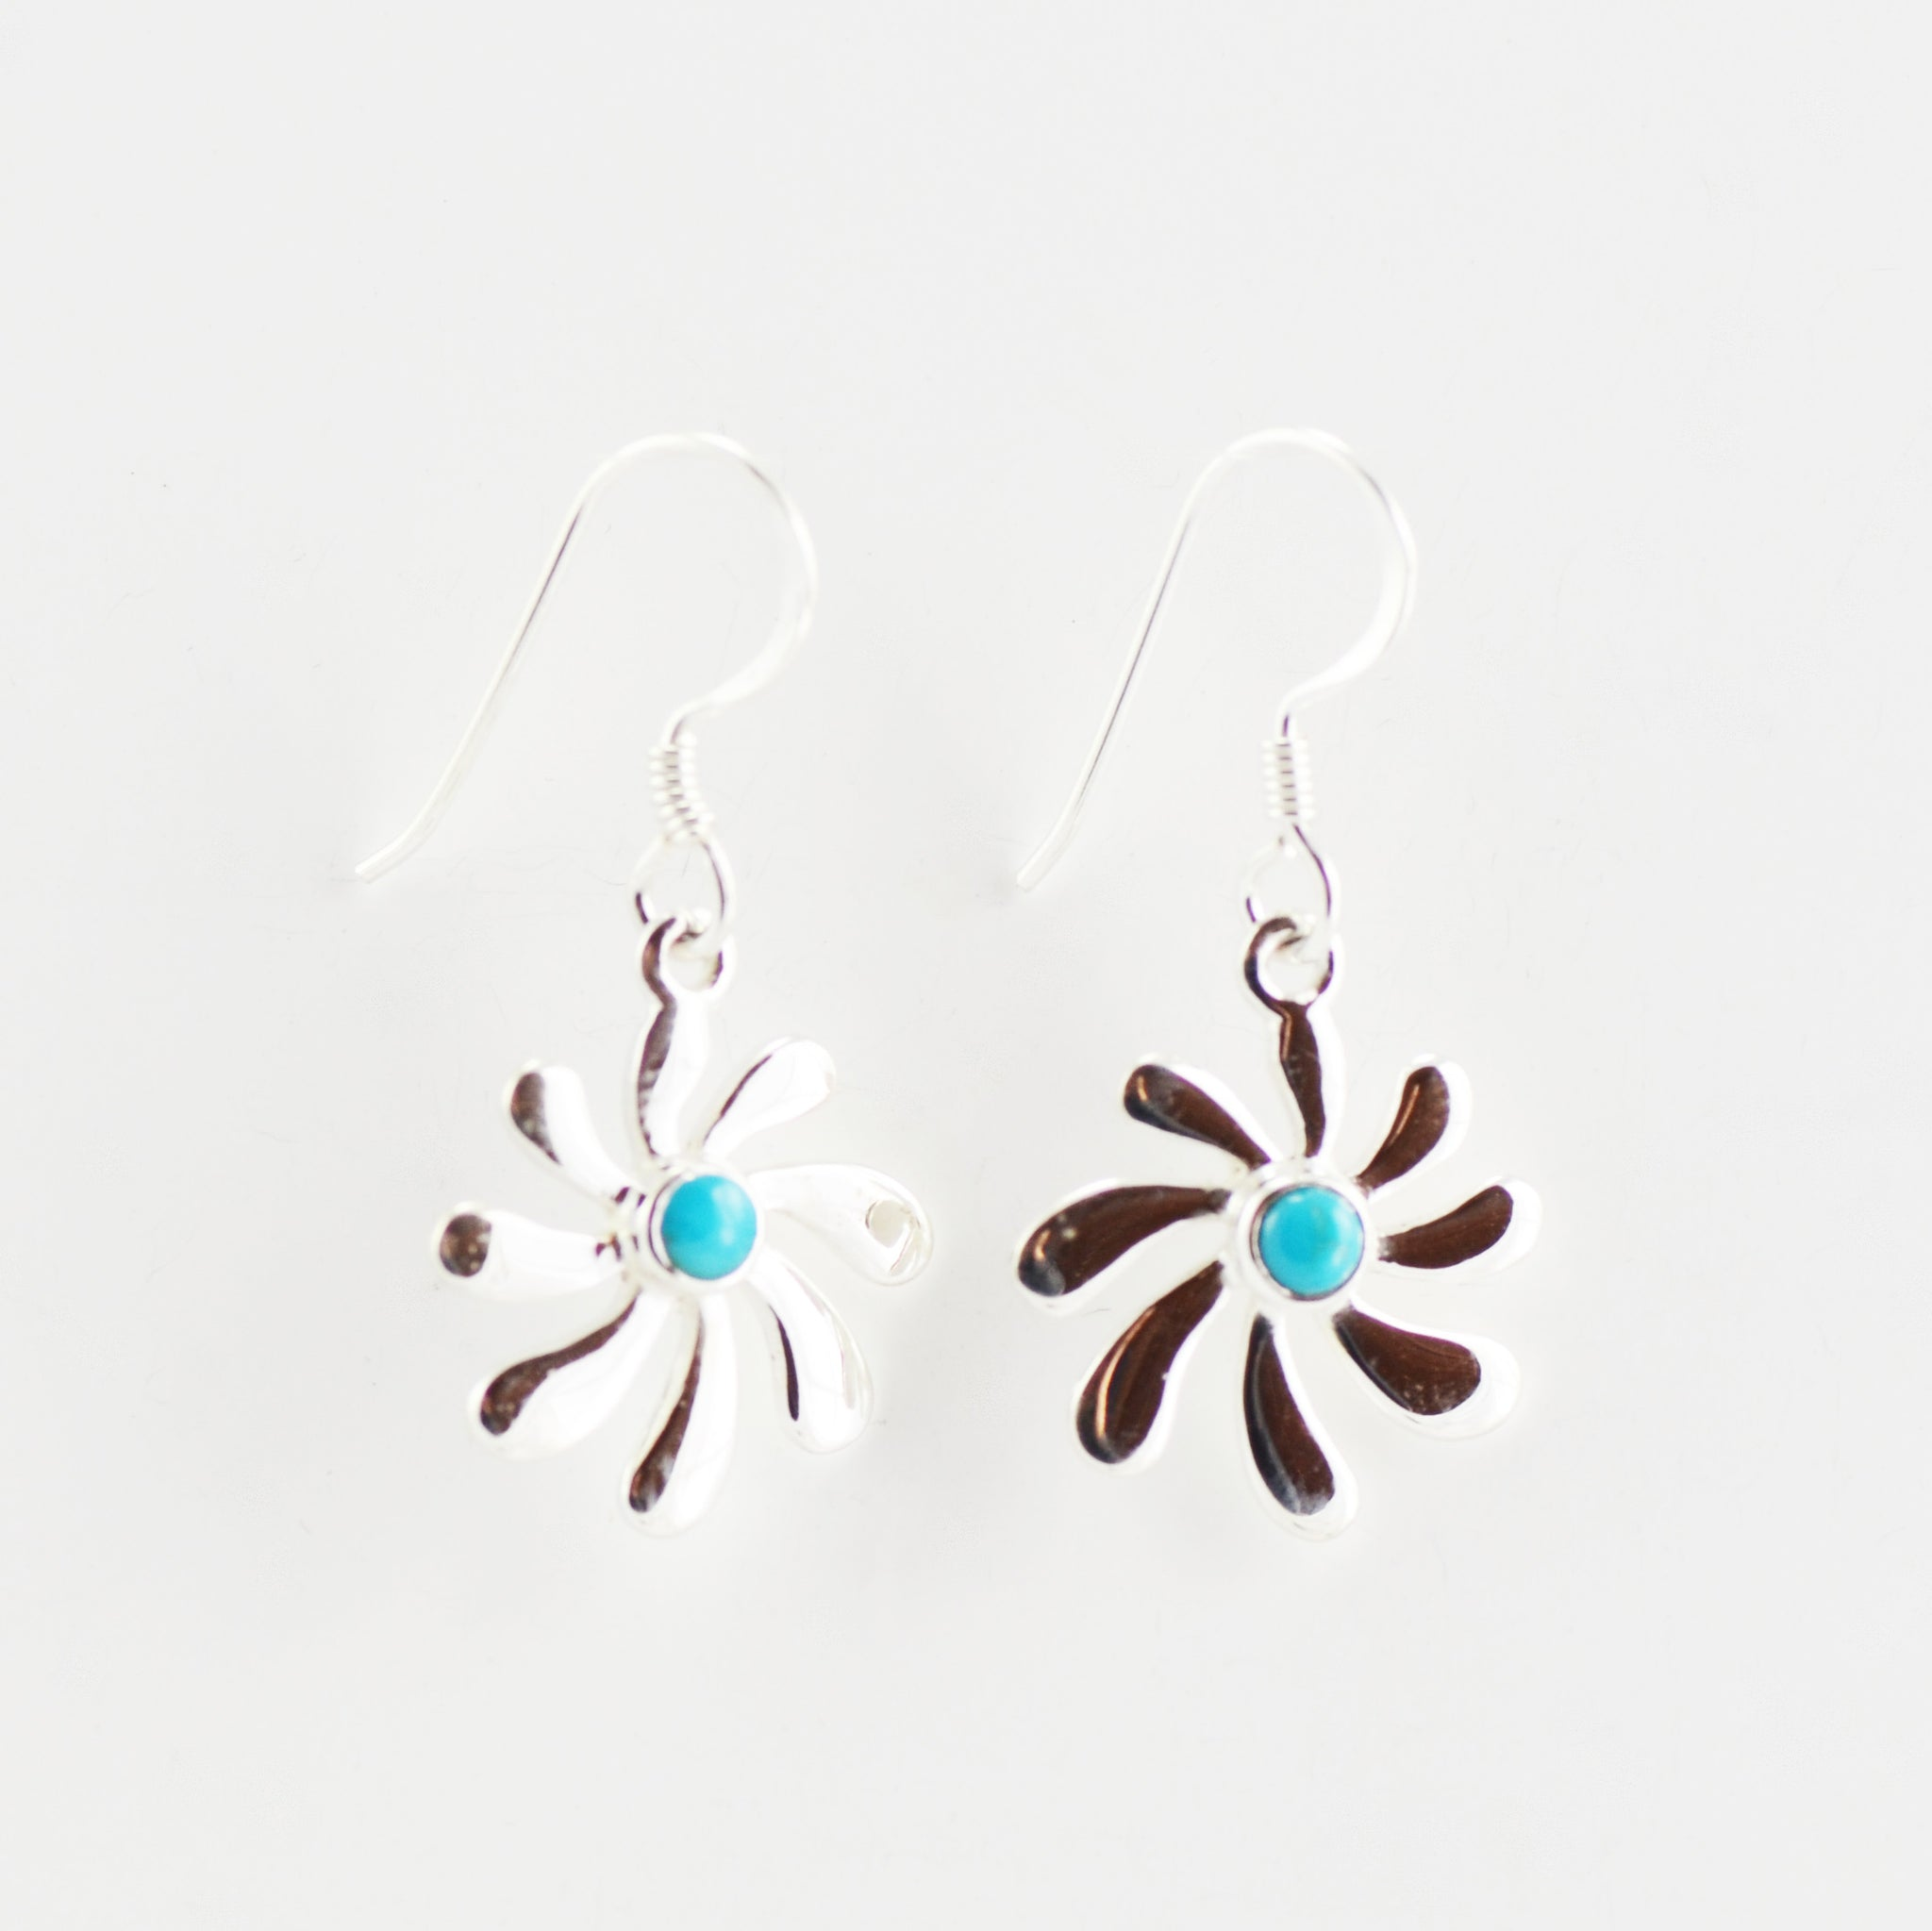 Turquoise Tsunami Swirl Stud Earrings